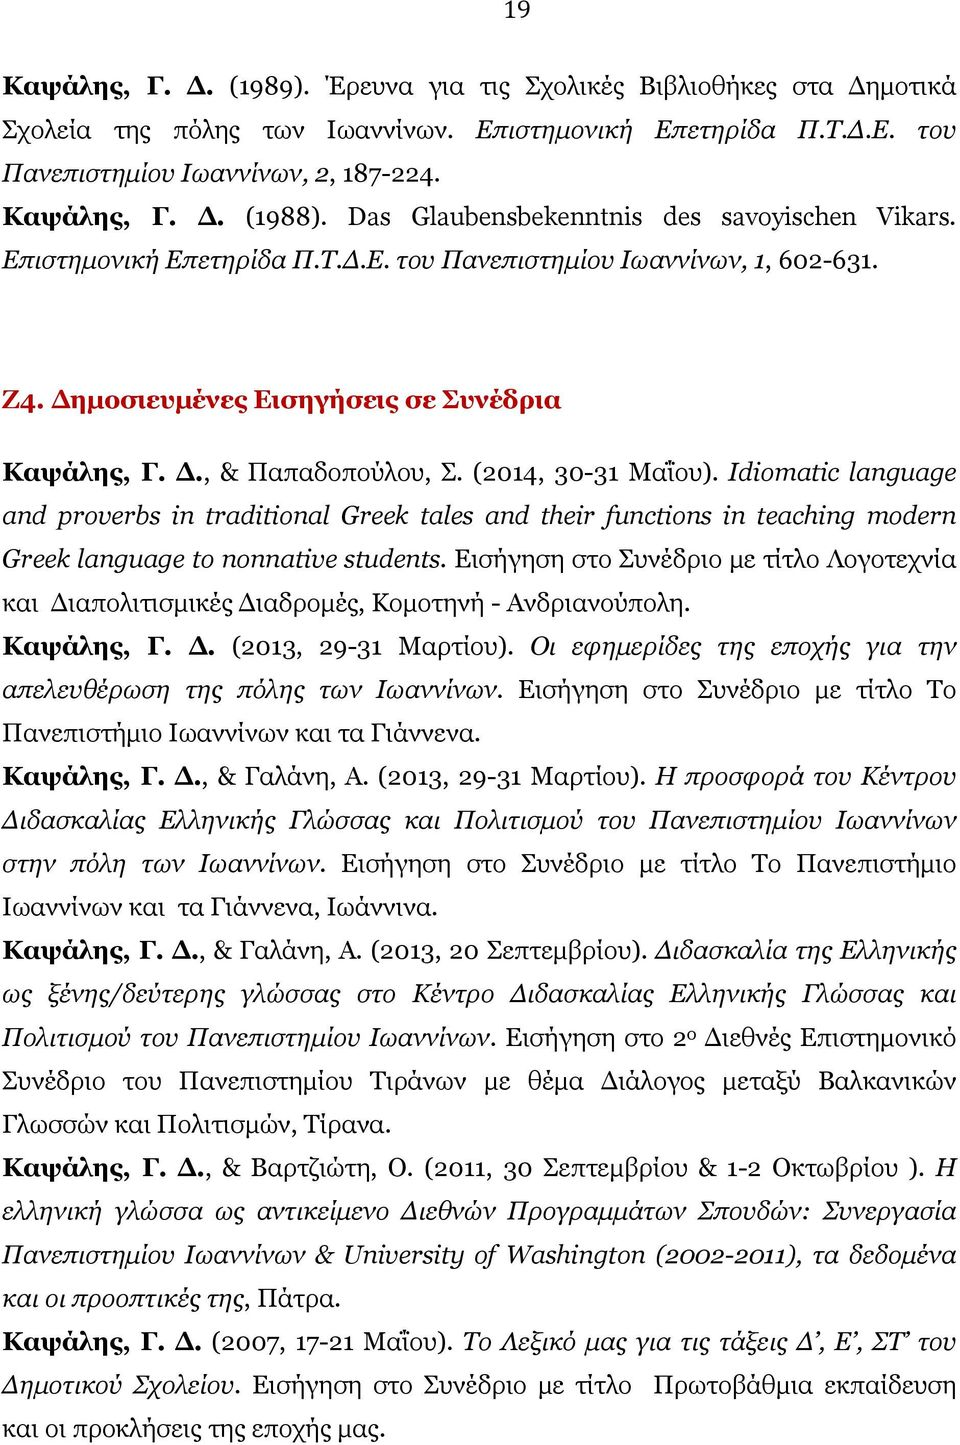 (2014, 30-31 Μαΐου). Idiomatic language and proverbs in traditional Greek tales and their functions in teaching modern Greek language to nonnative students.